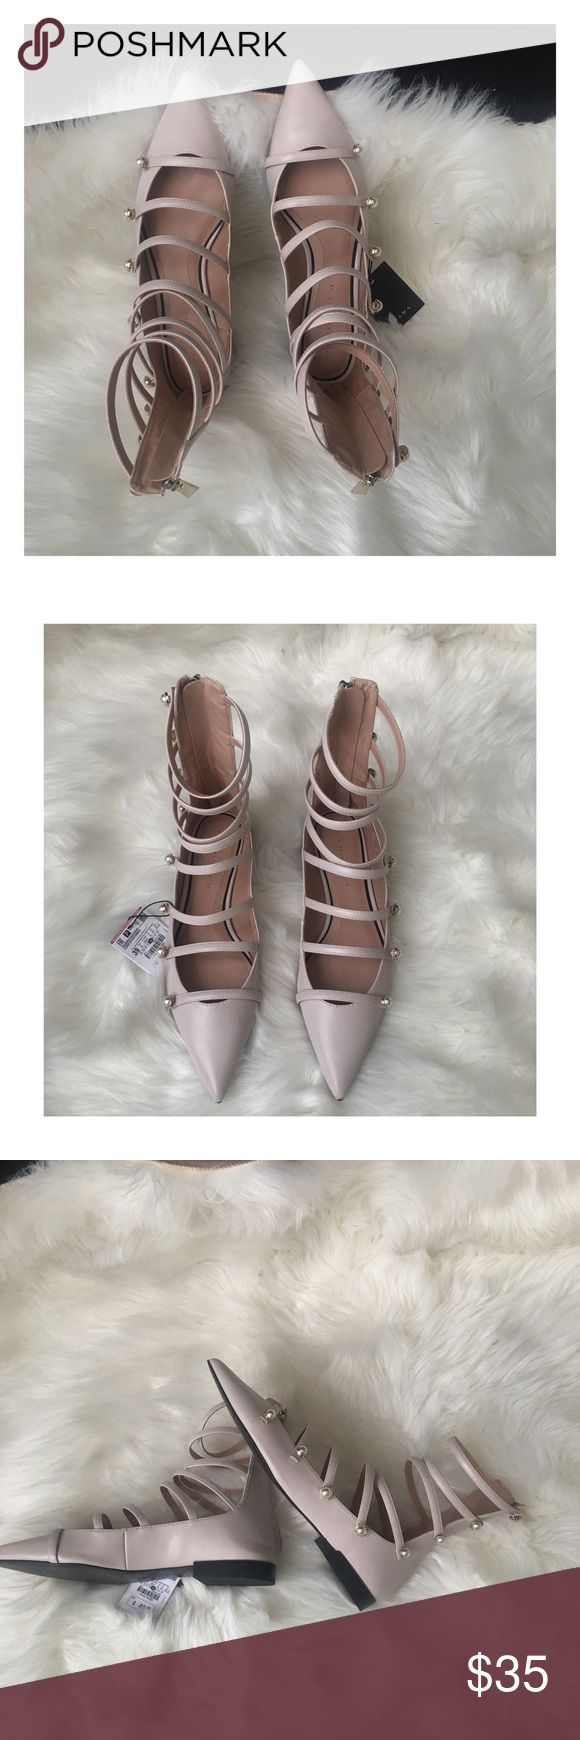 """💋JUST IN💋 ZARA NUDE ANKLE BOOTS WITH PEARLS Nude Ankle Boot Ballerinas  Featuring multiple straps and faux pearls at the outside  Pointed toes and back zip fastening  Sole height 0.9"""" Wear with your favorite dress or pair with your favorite Jeans to stand out. Zara Shoes Ankle Boots & Booties"""